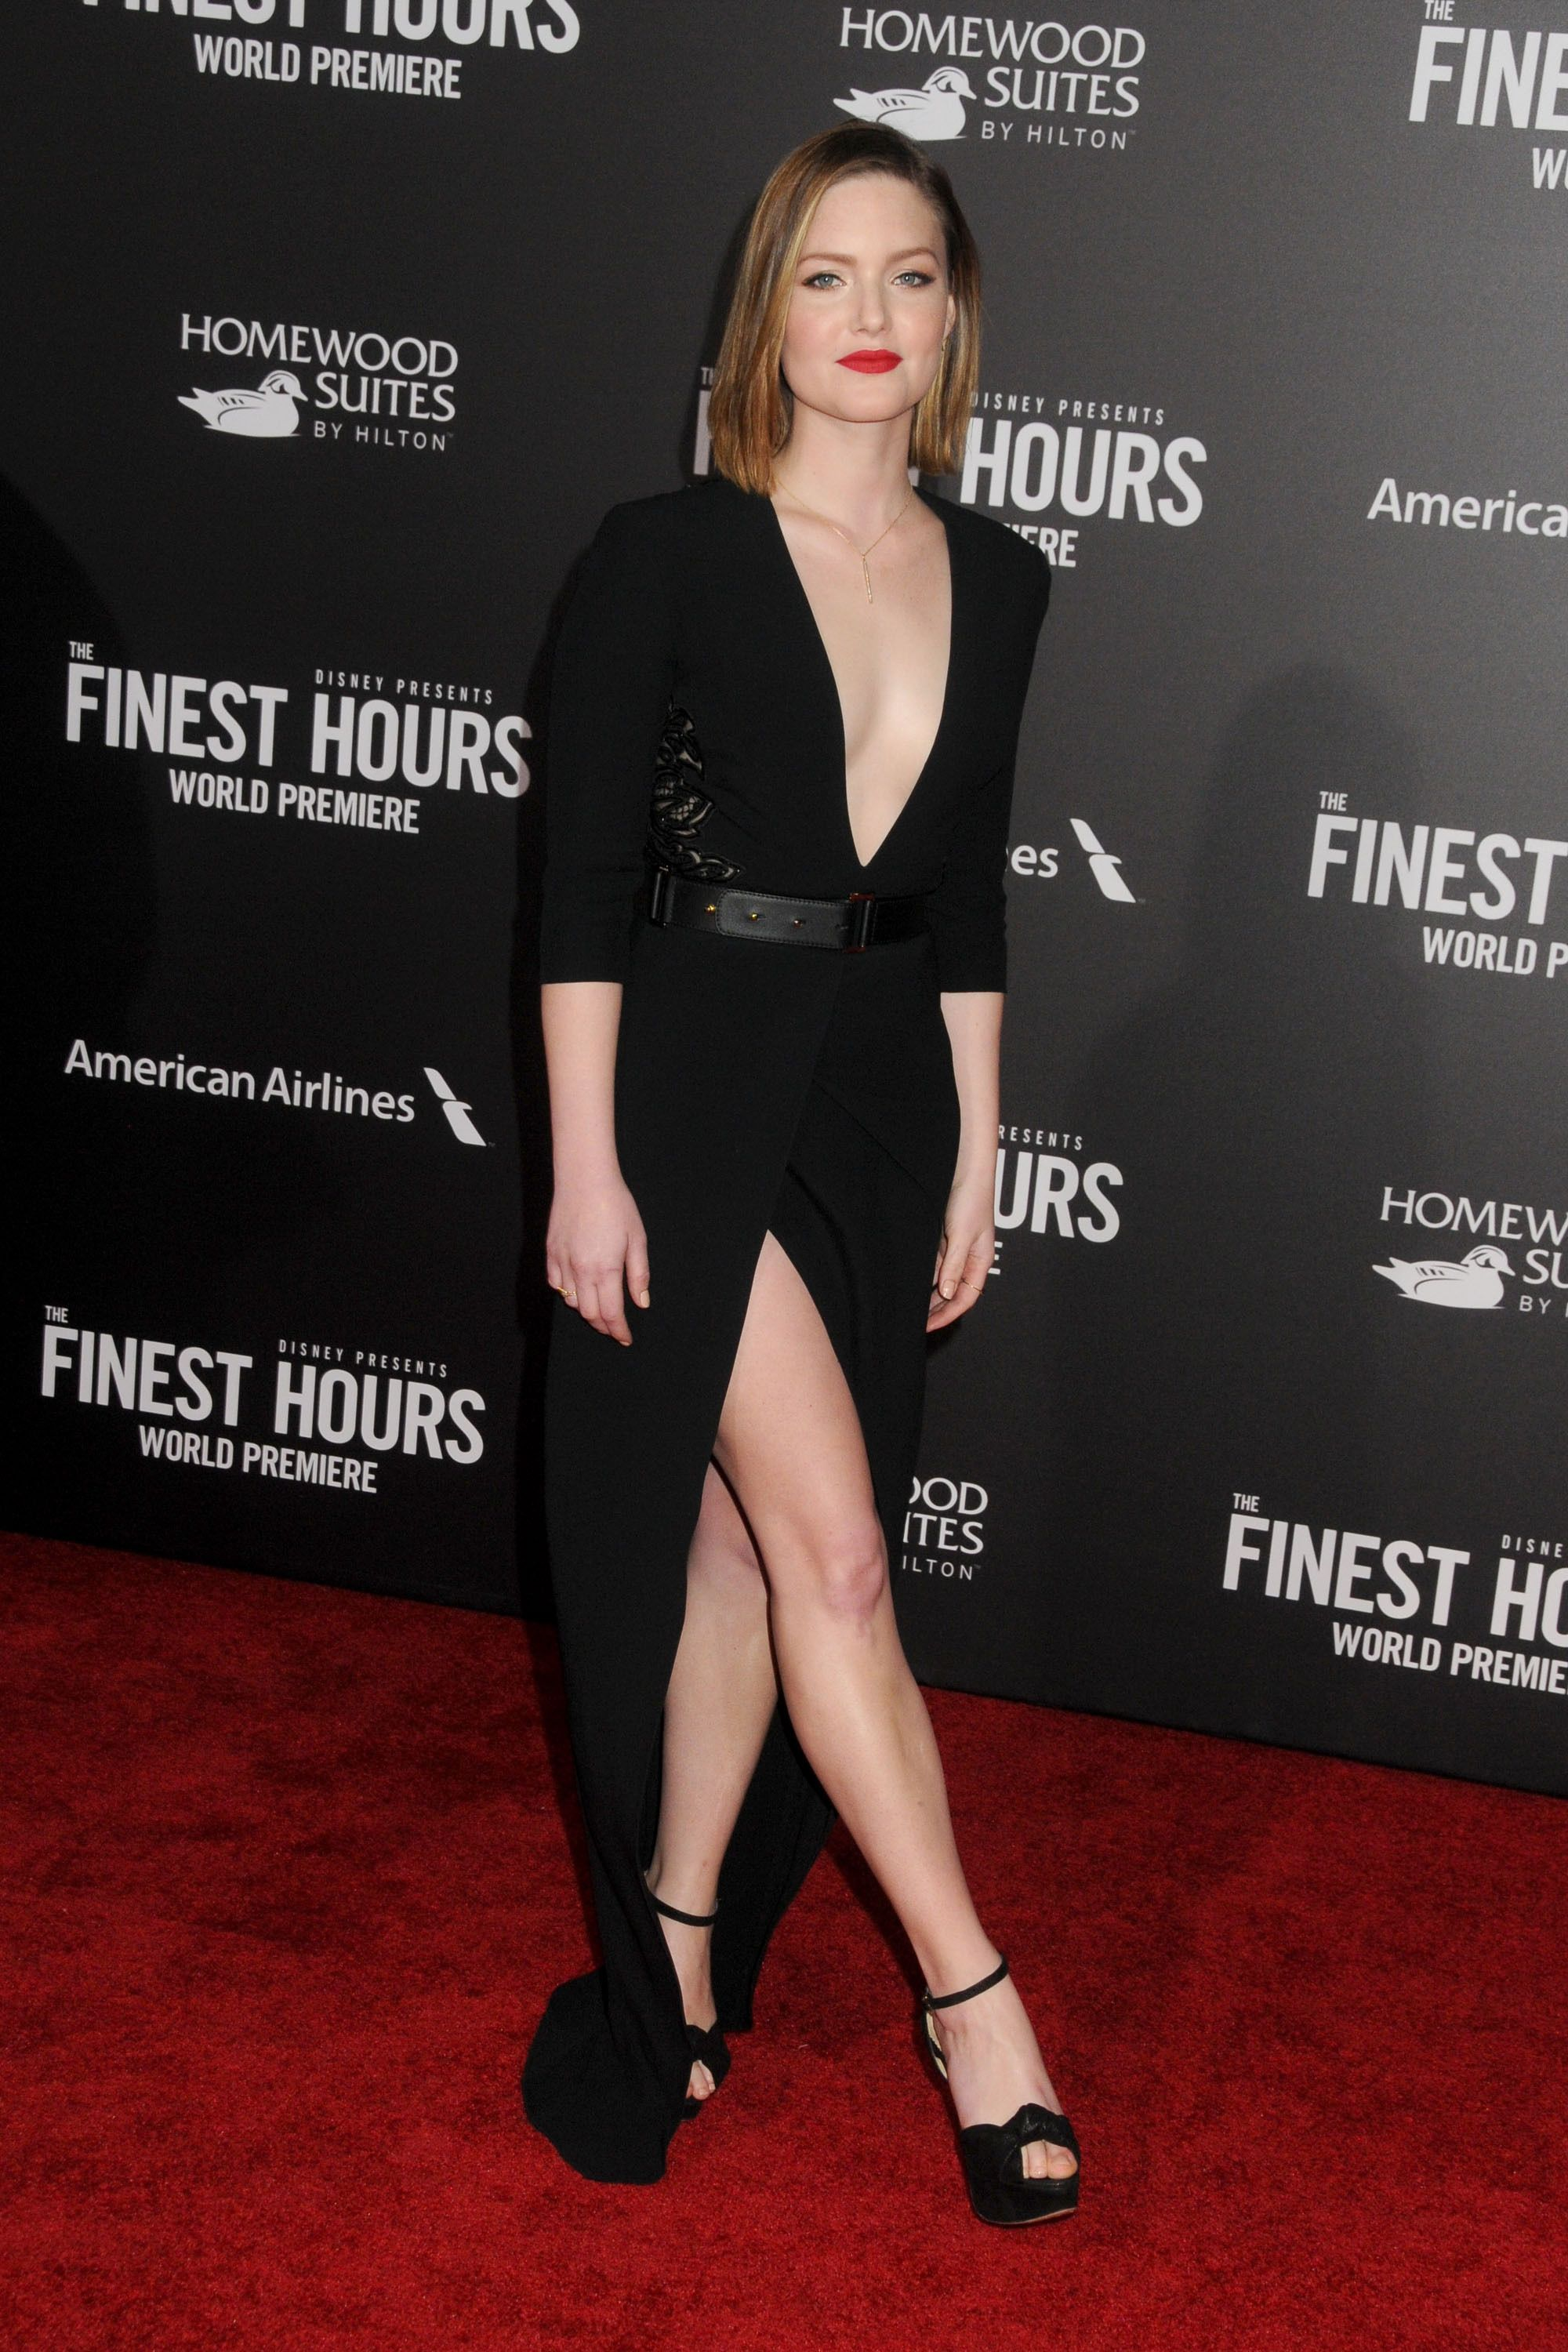 Cleavage Holliday Grainger naked (16 photos), Topless, Fappening, Feet, braless 2015